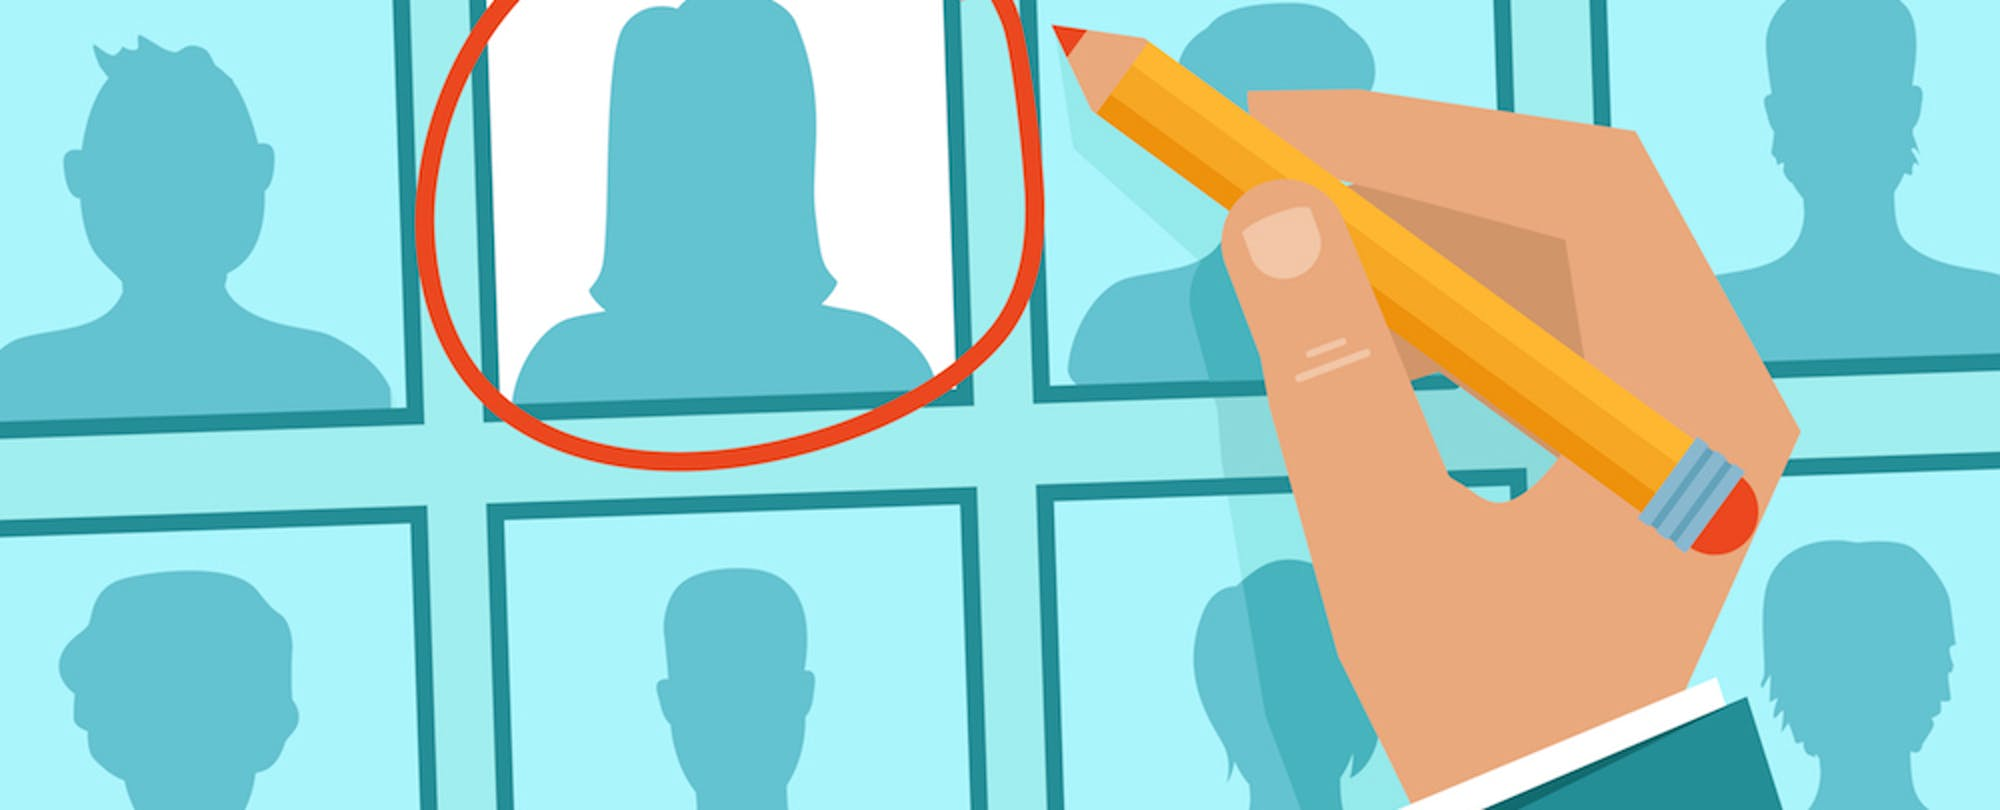 Hiring Successful Teachers—Two New Studies Point to What Works and What Doesn't